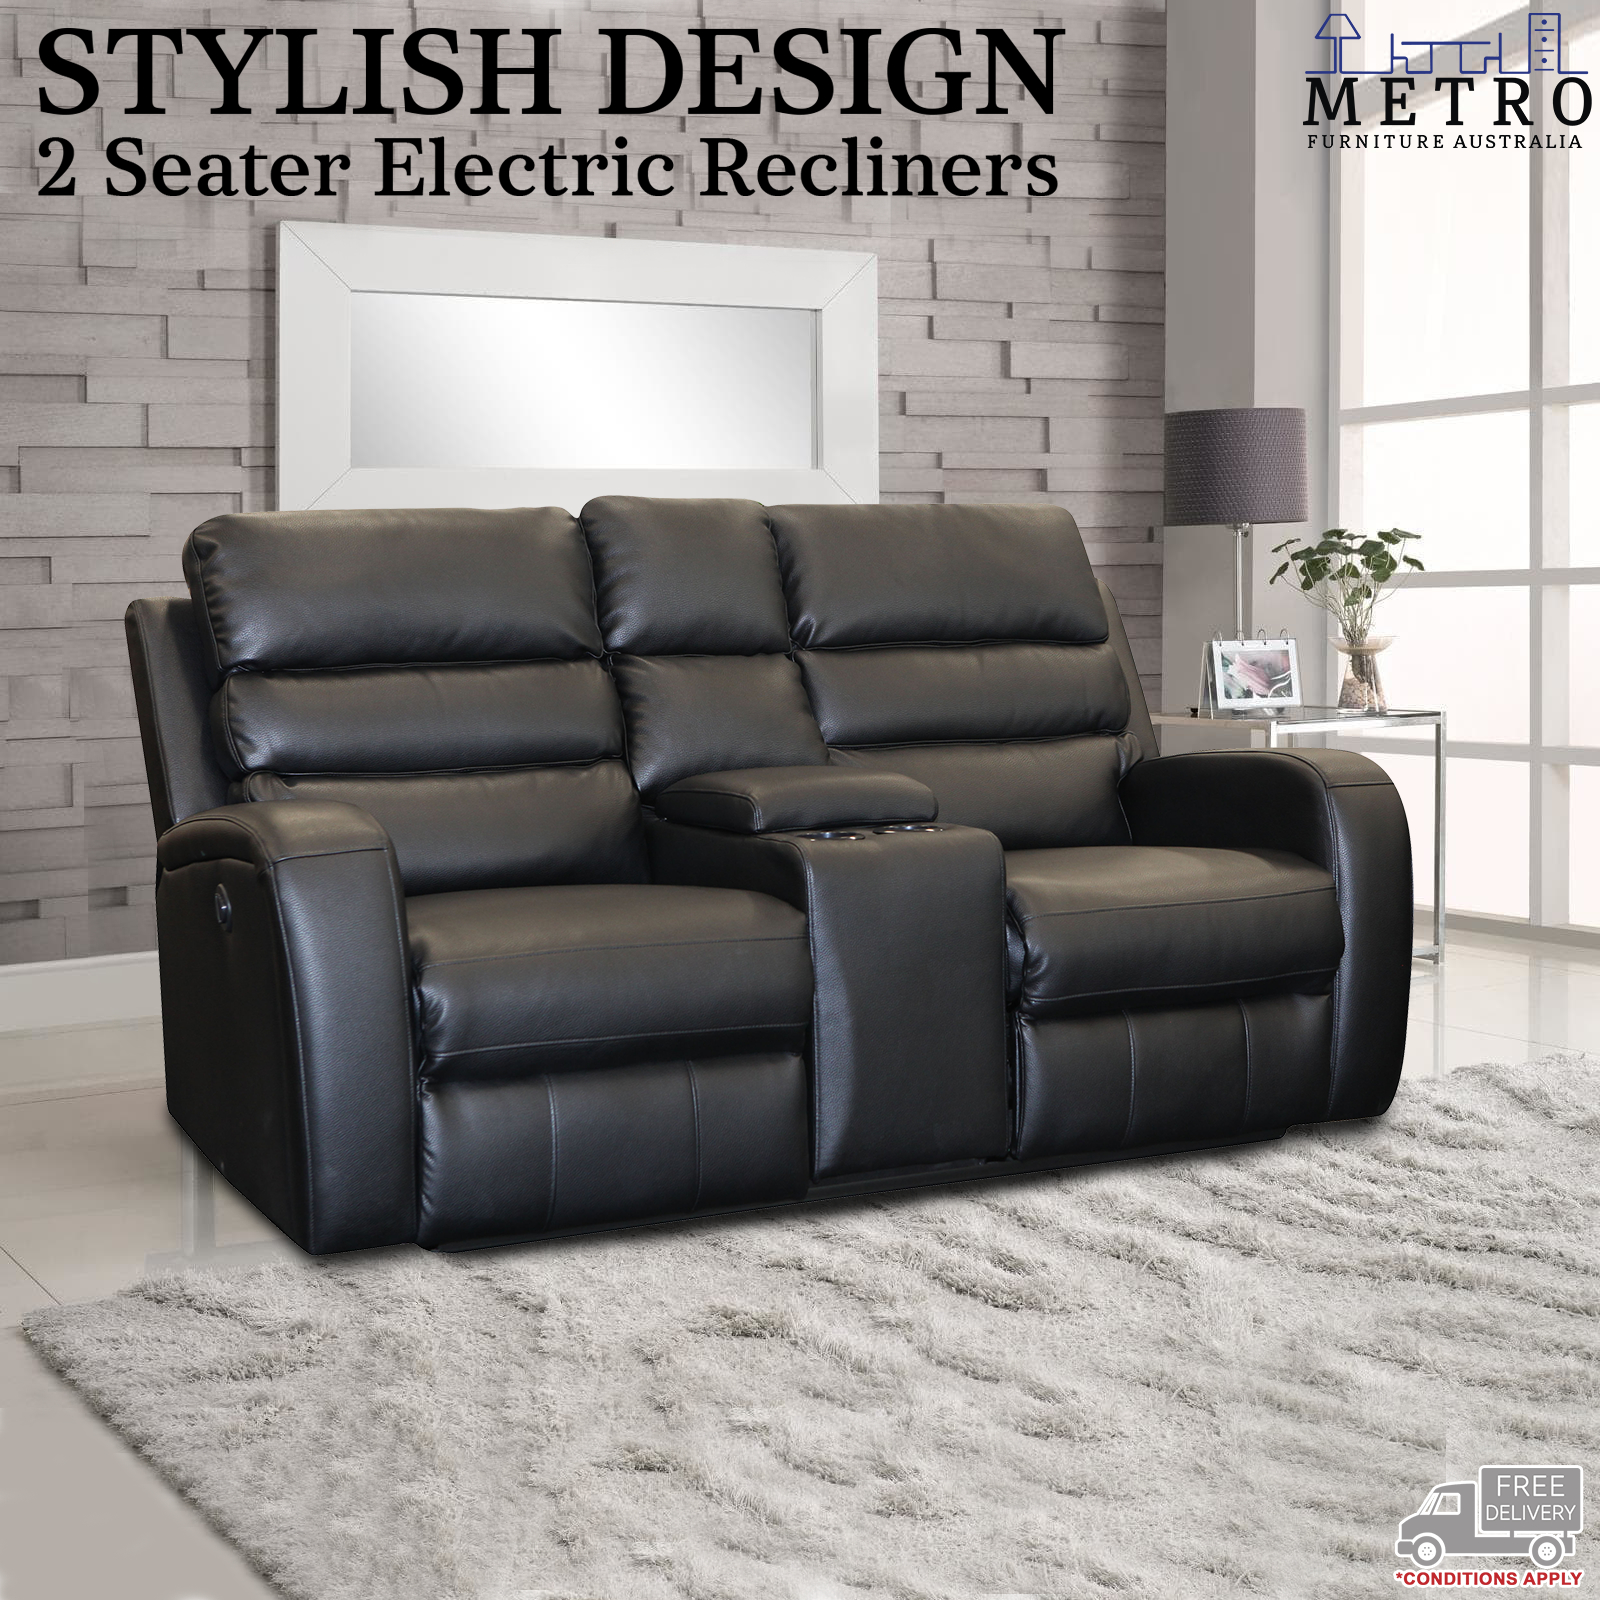 Details about New Luxury 3,2,1 Seater Leather Air Black Electric Recliner  Sofa Couch Lounge